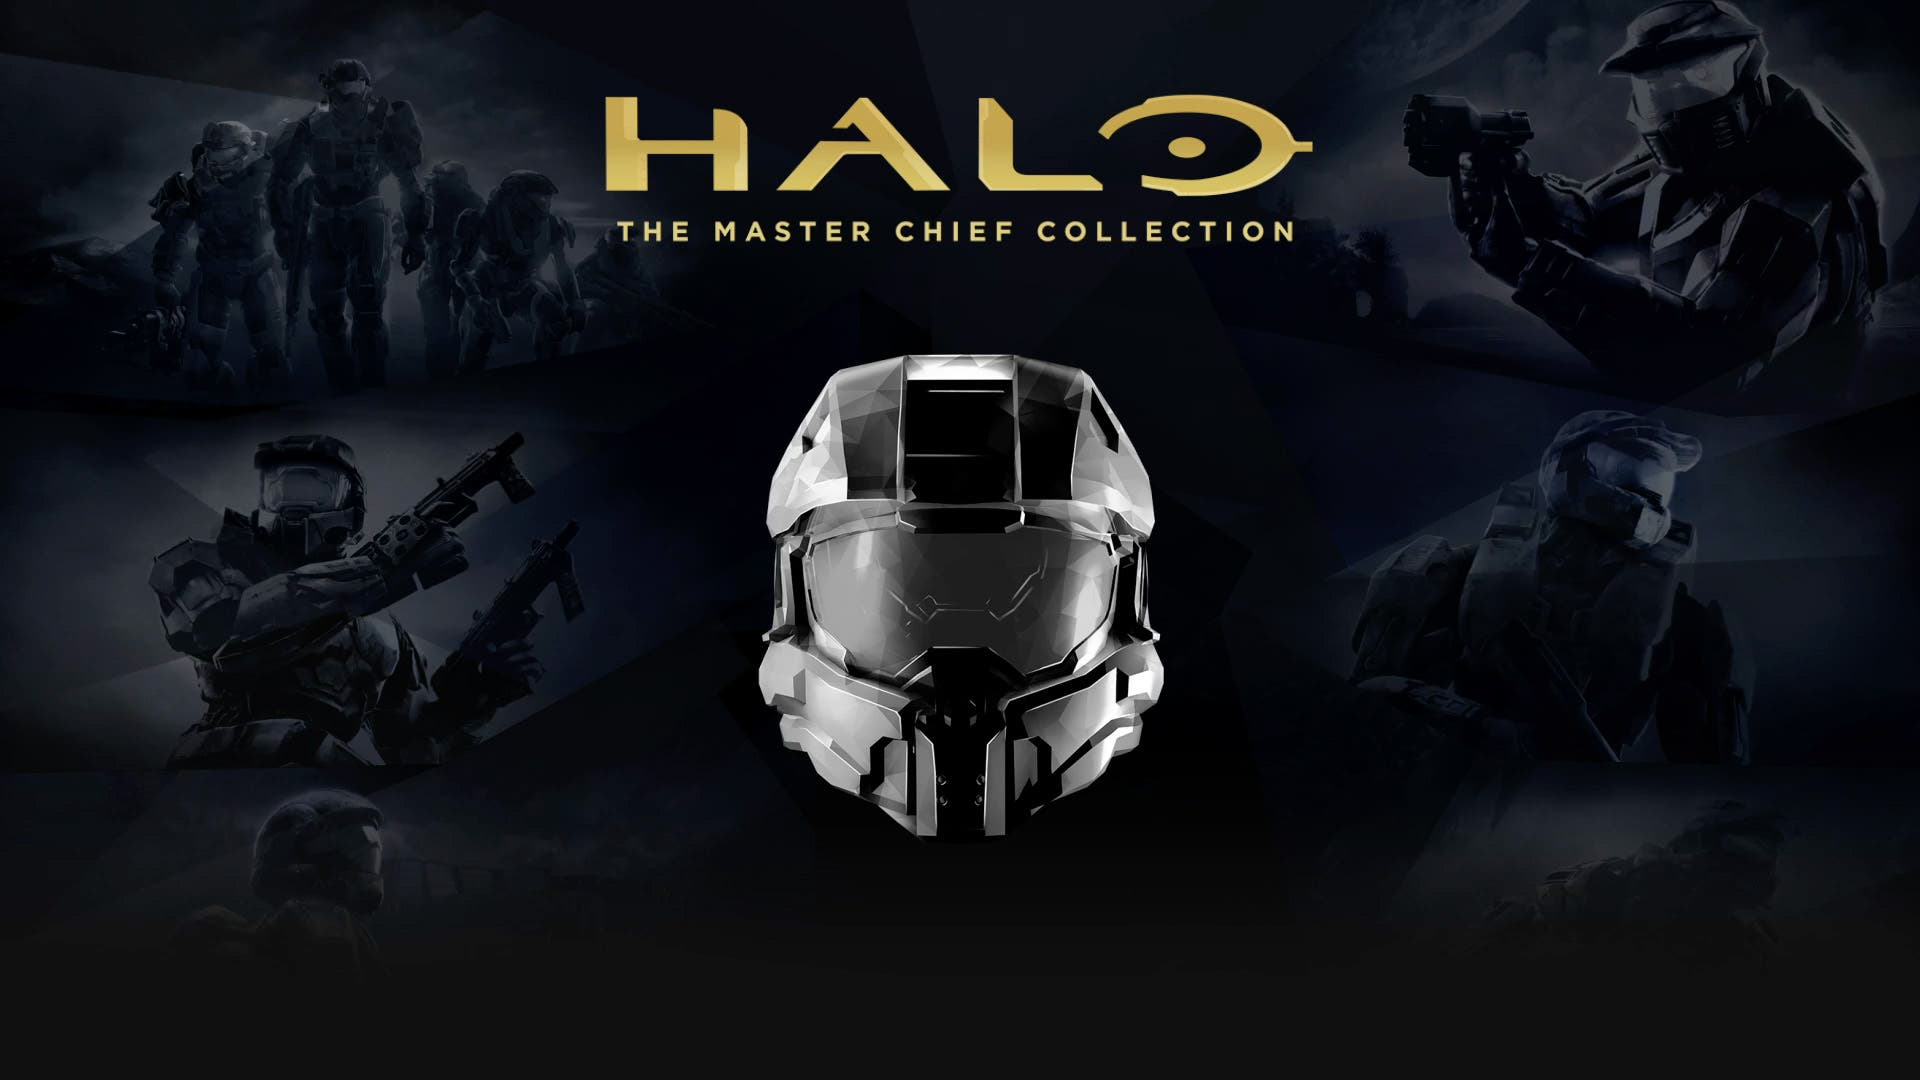 Vuelven las conjeturas de que Halo: The Master Chief Collection podría llegar a Nintendo Switch 6